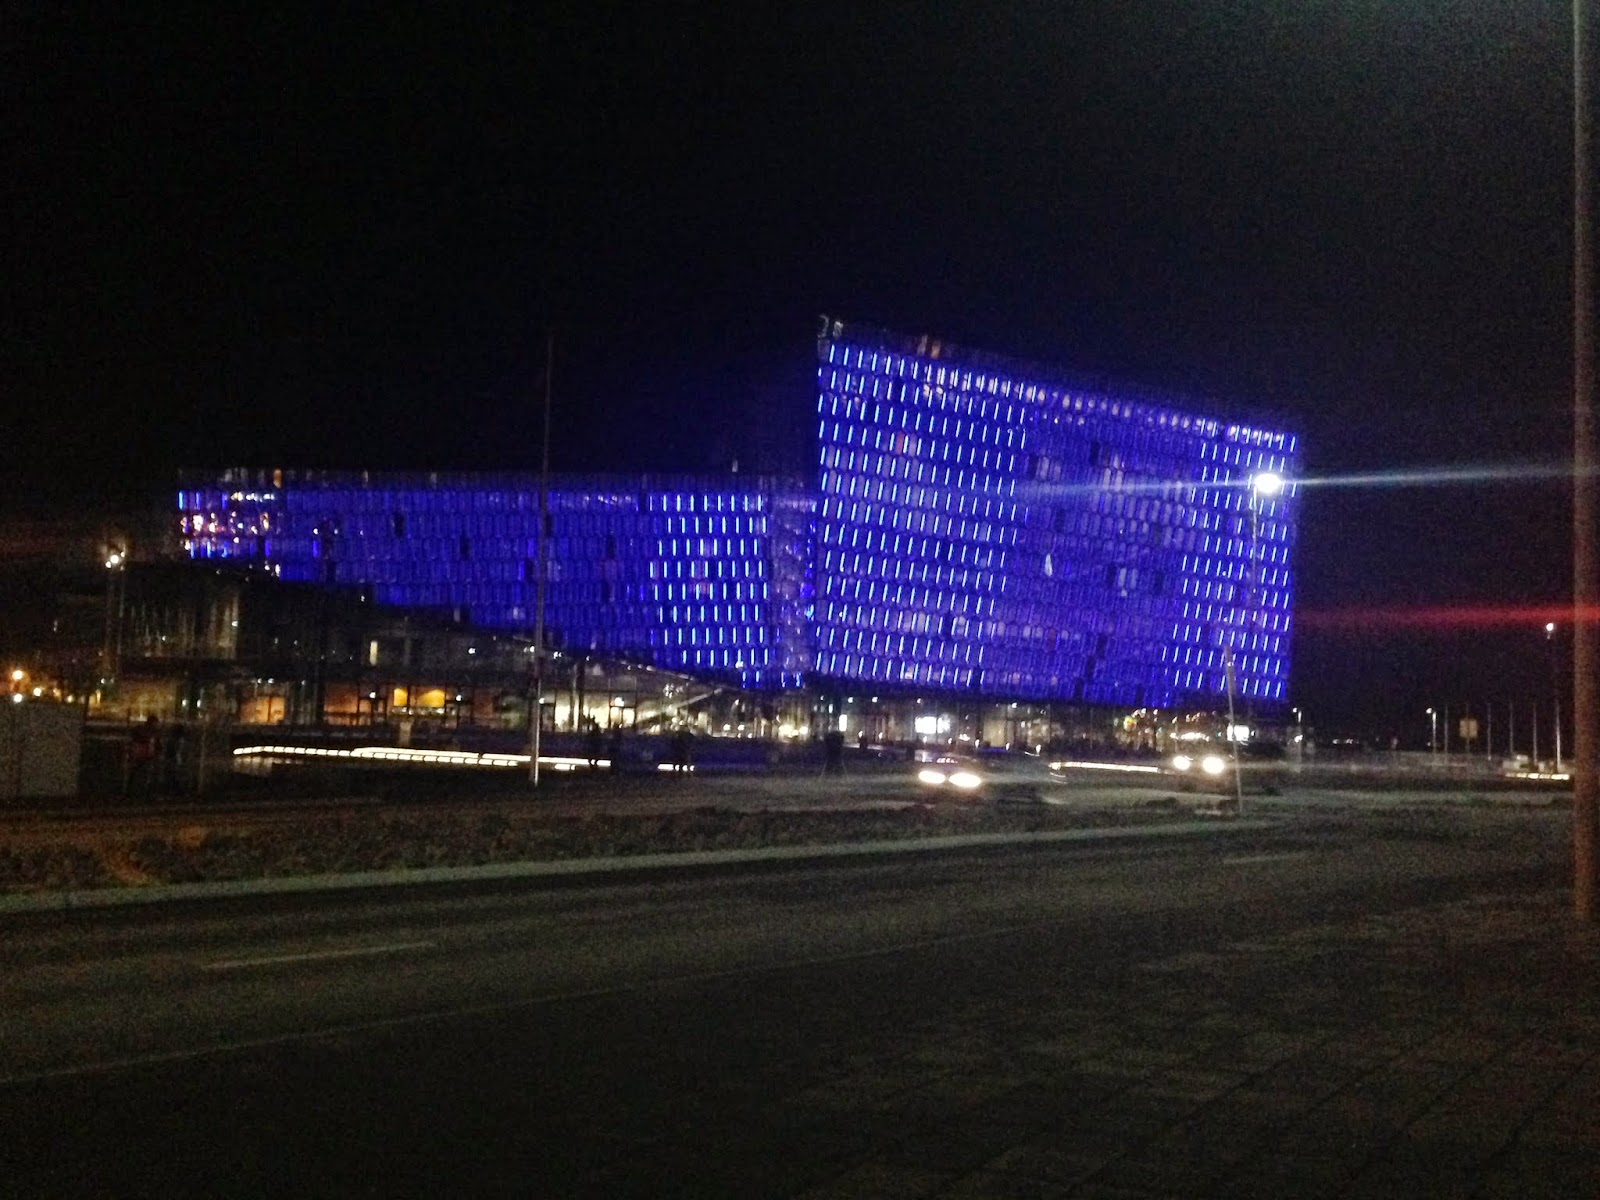 The Harpa concert hall at night